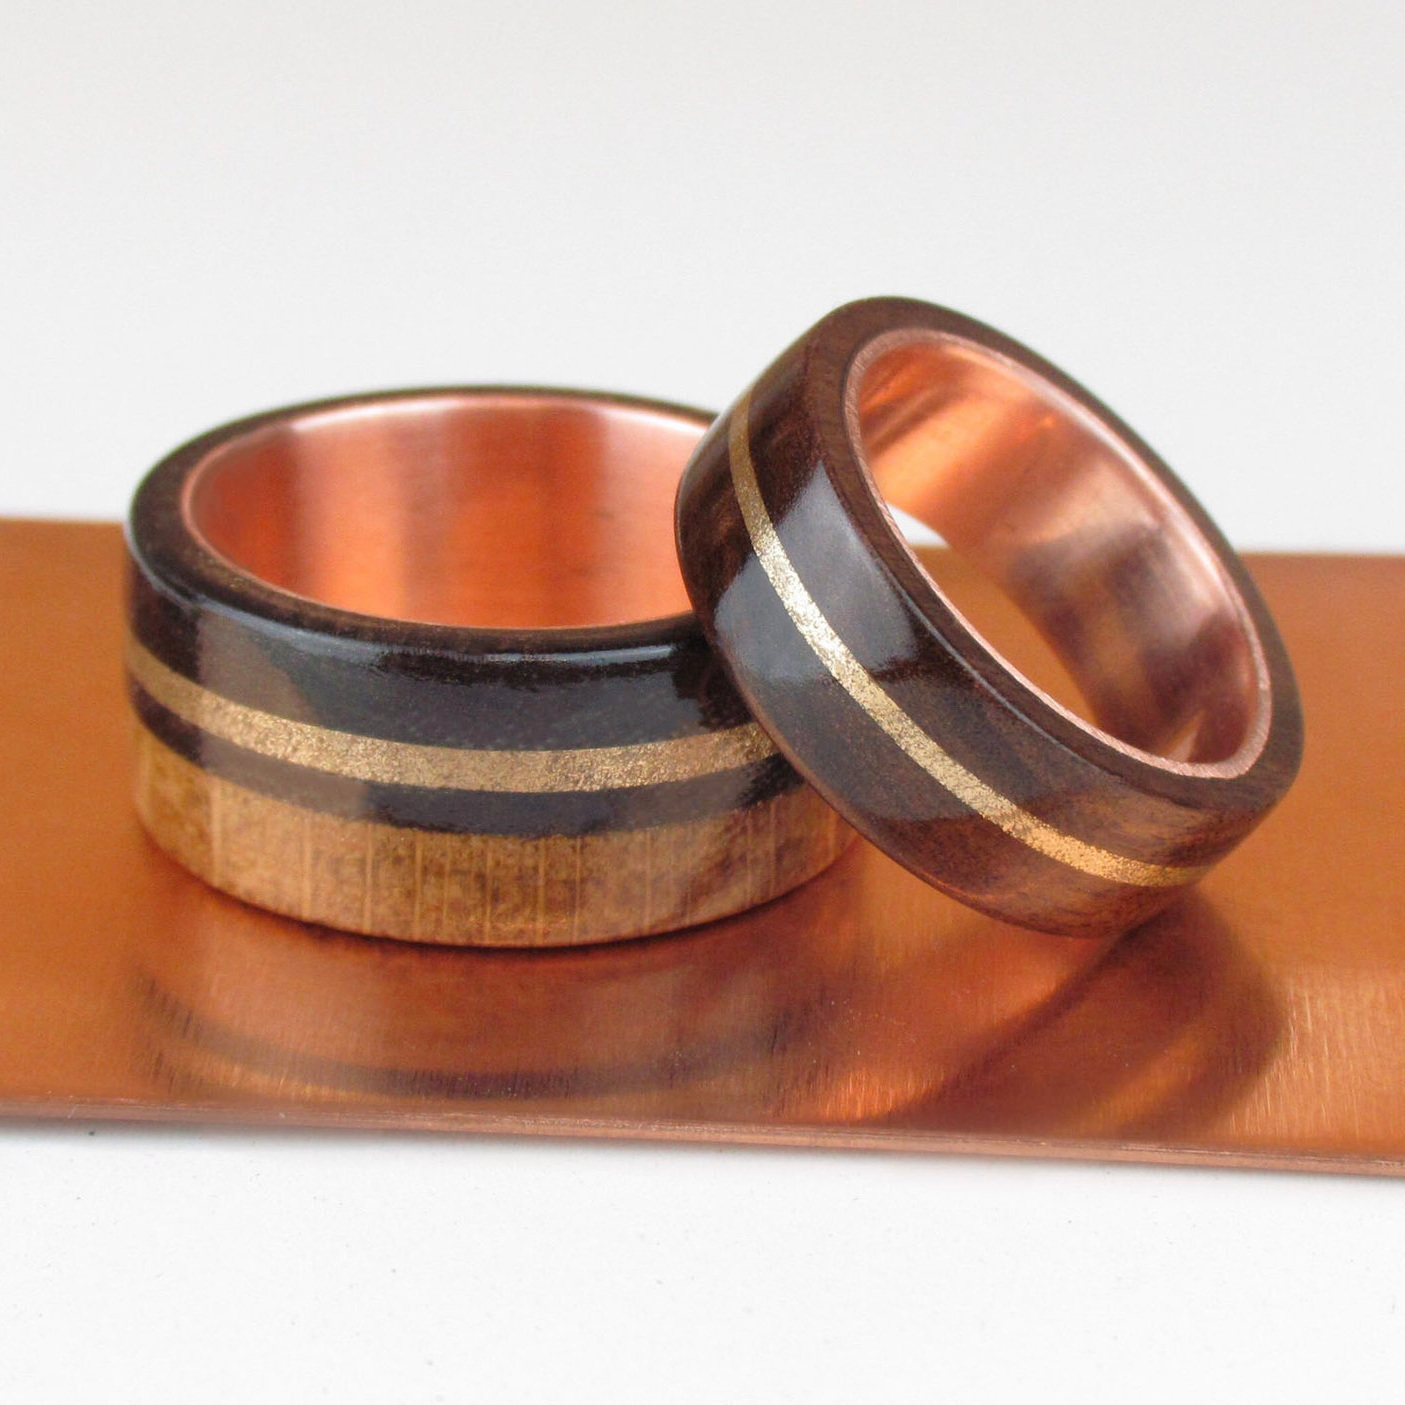 7th Wedding Anniversary Gifts - Copper and wood jewellery